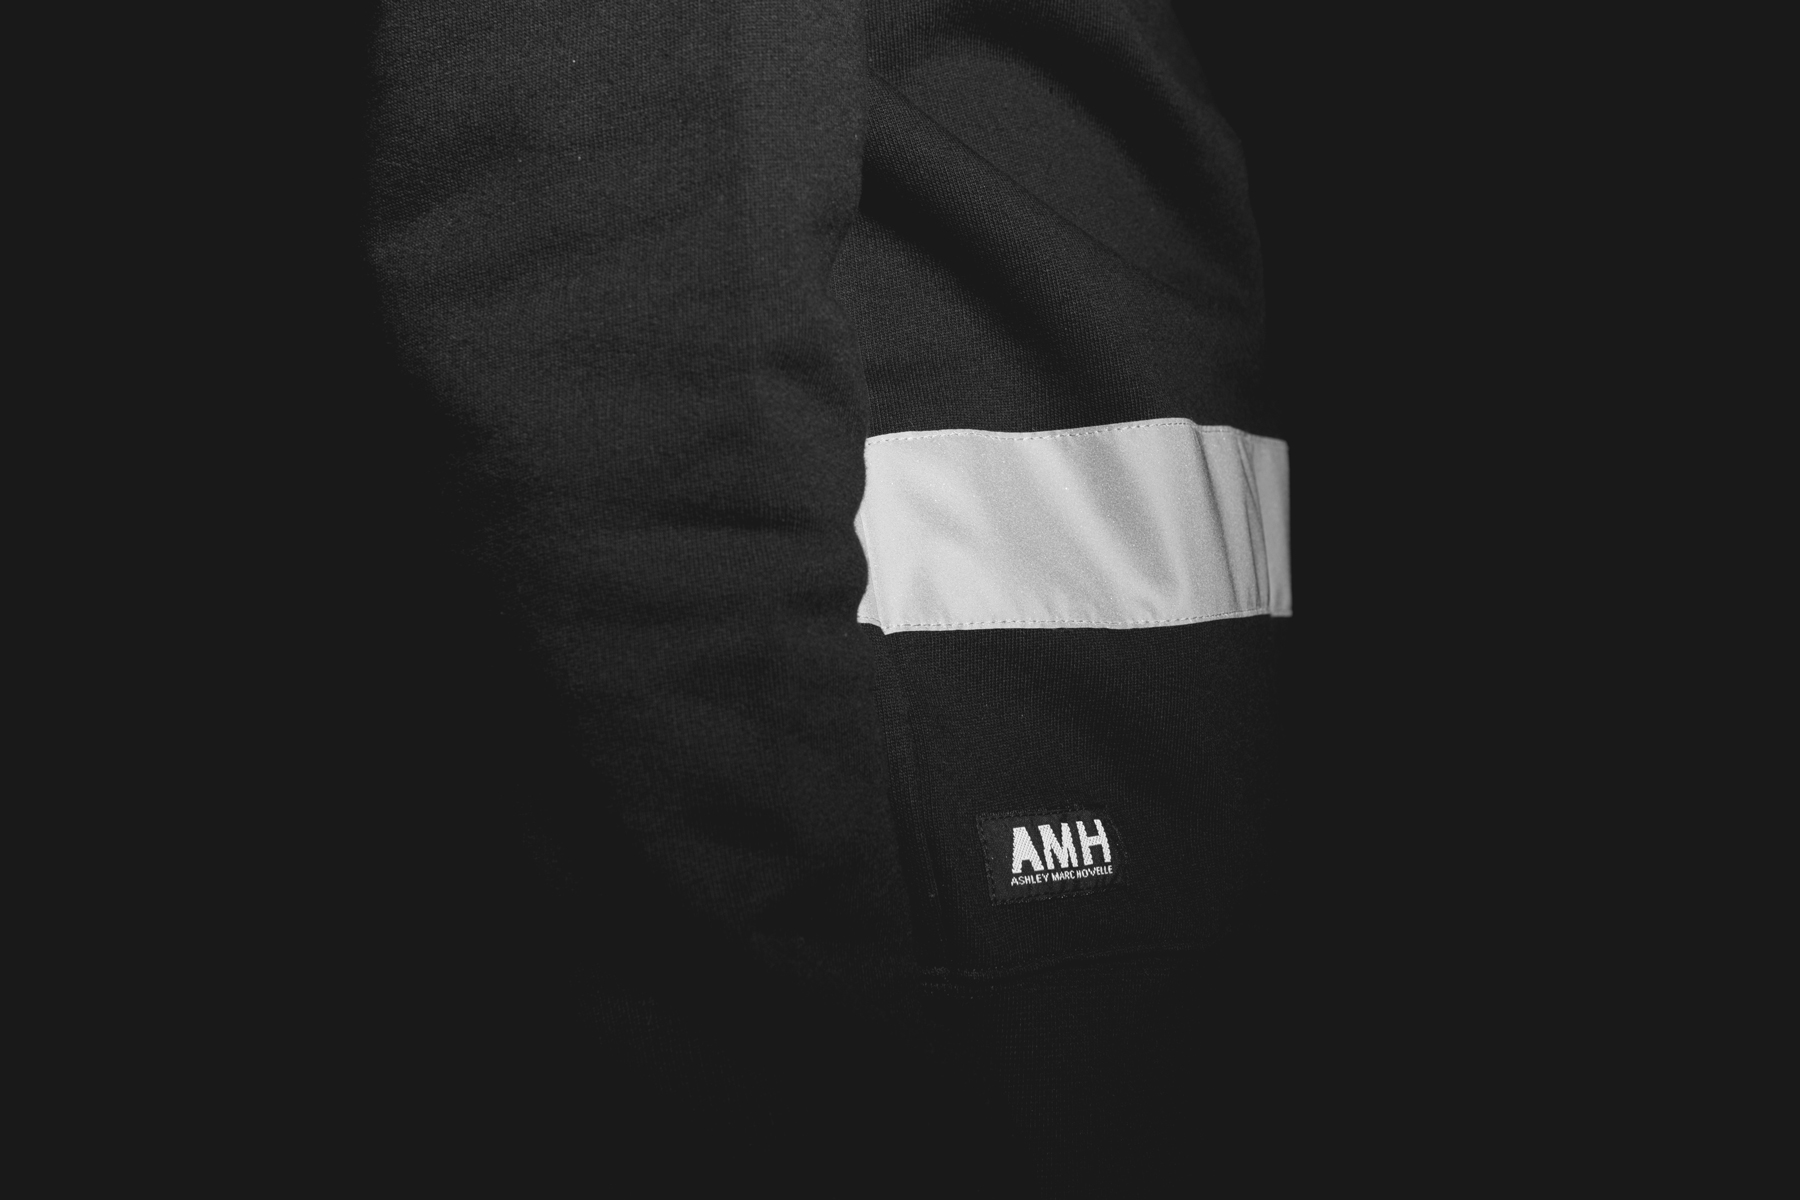 AMH 2014 Reflective Block Panel T-Shirts